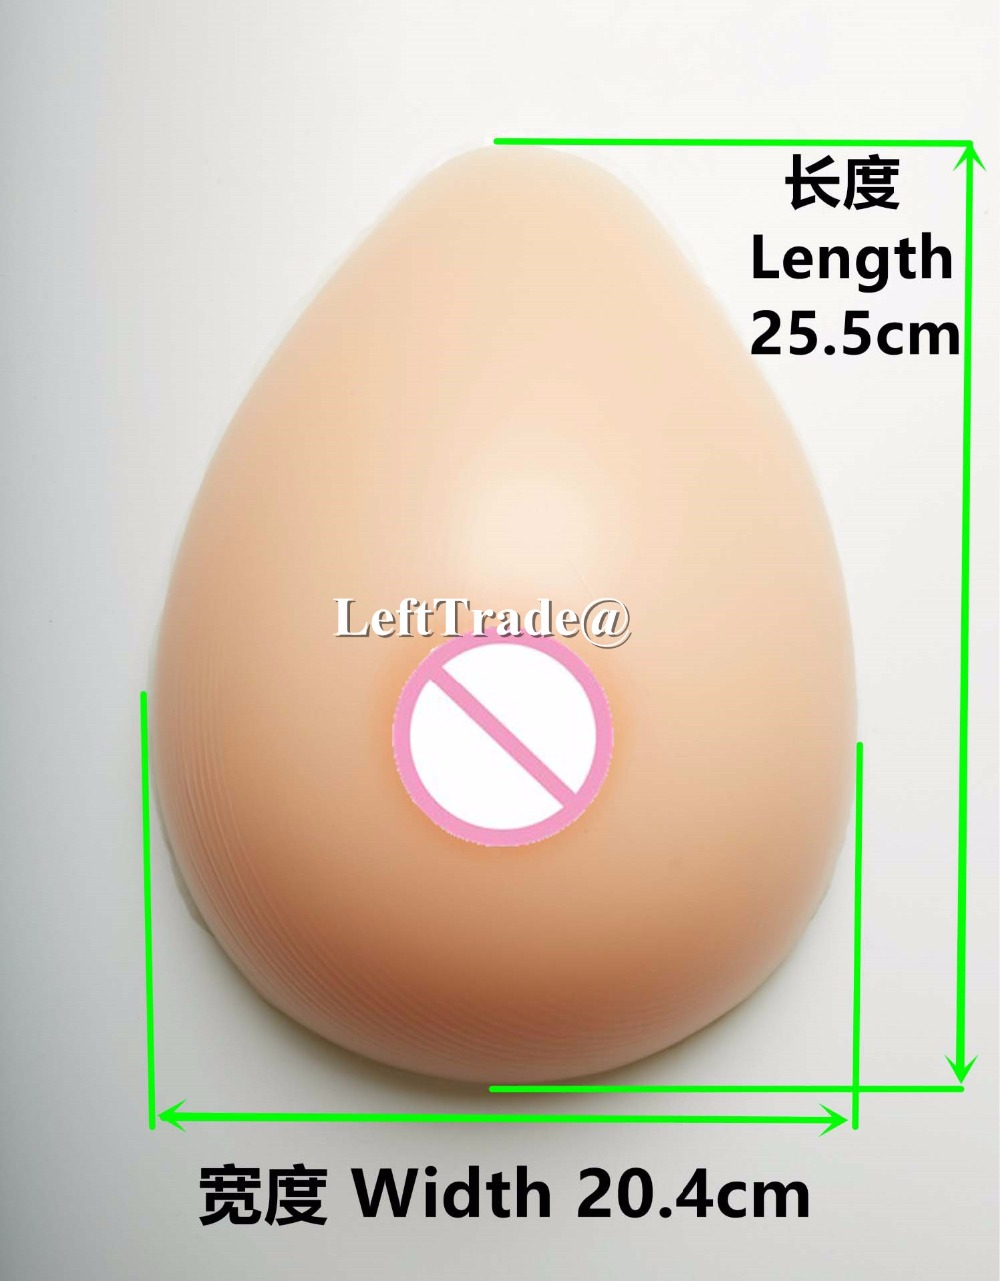 1 pair 4600 g L cup 100% silicone shemale huge breast forms nude skin tone1 pair 4600 g L cup 100% silicone shemale huge breast forms nude skin tone